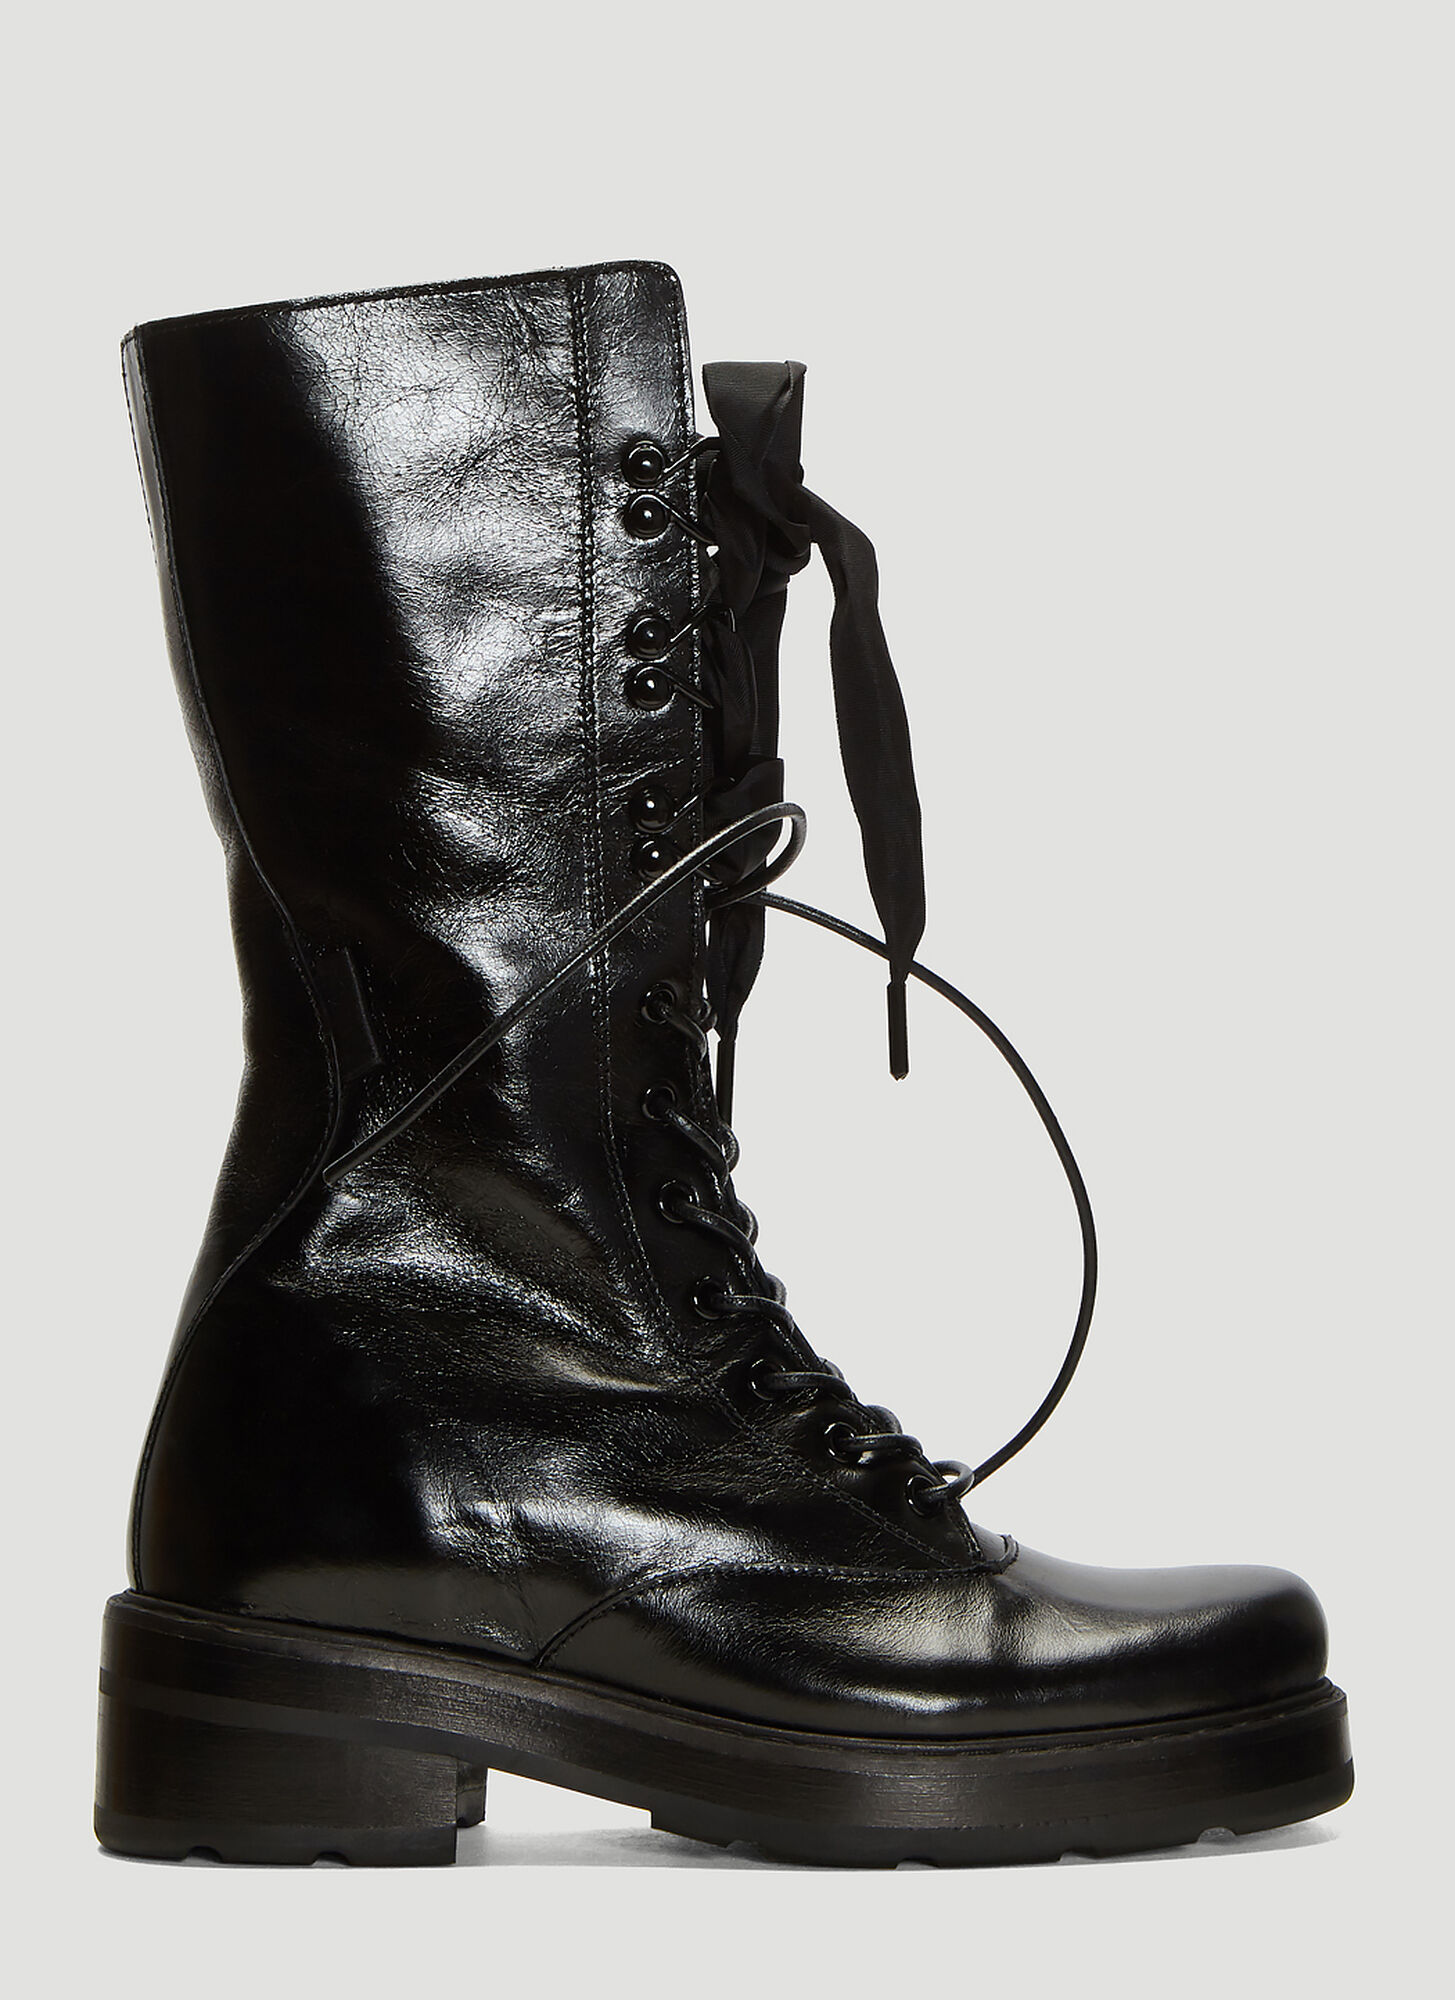 Olivier Theyskens Cracked Leather Lace-Up Boots in Black